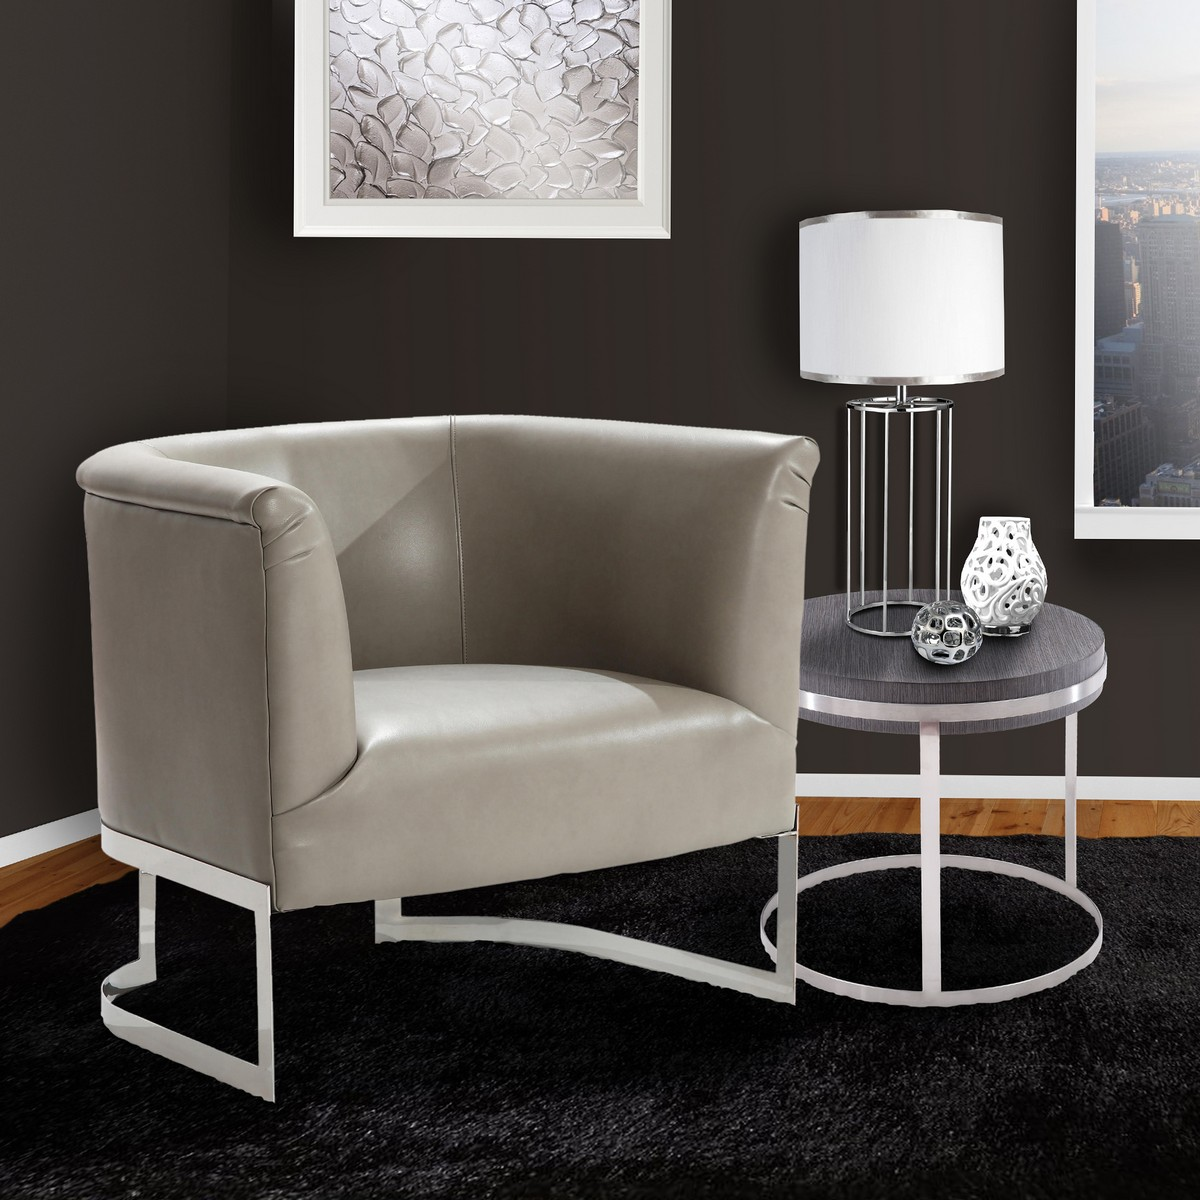 Armen Living Elite Contemporary Accent Chair In Smoke and Steel Finish